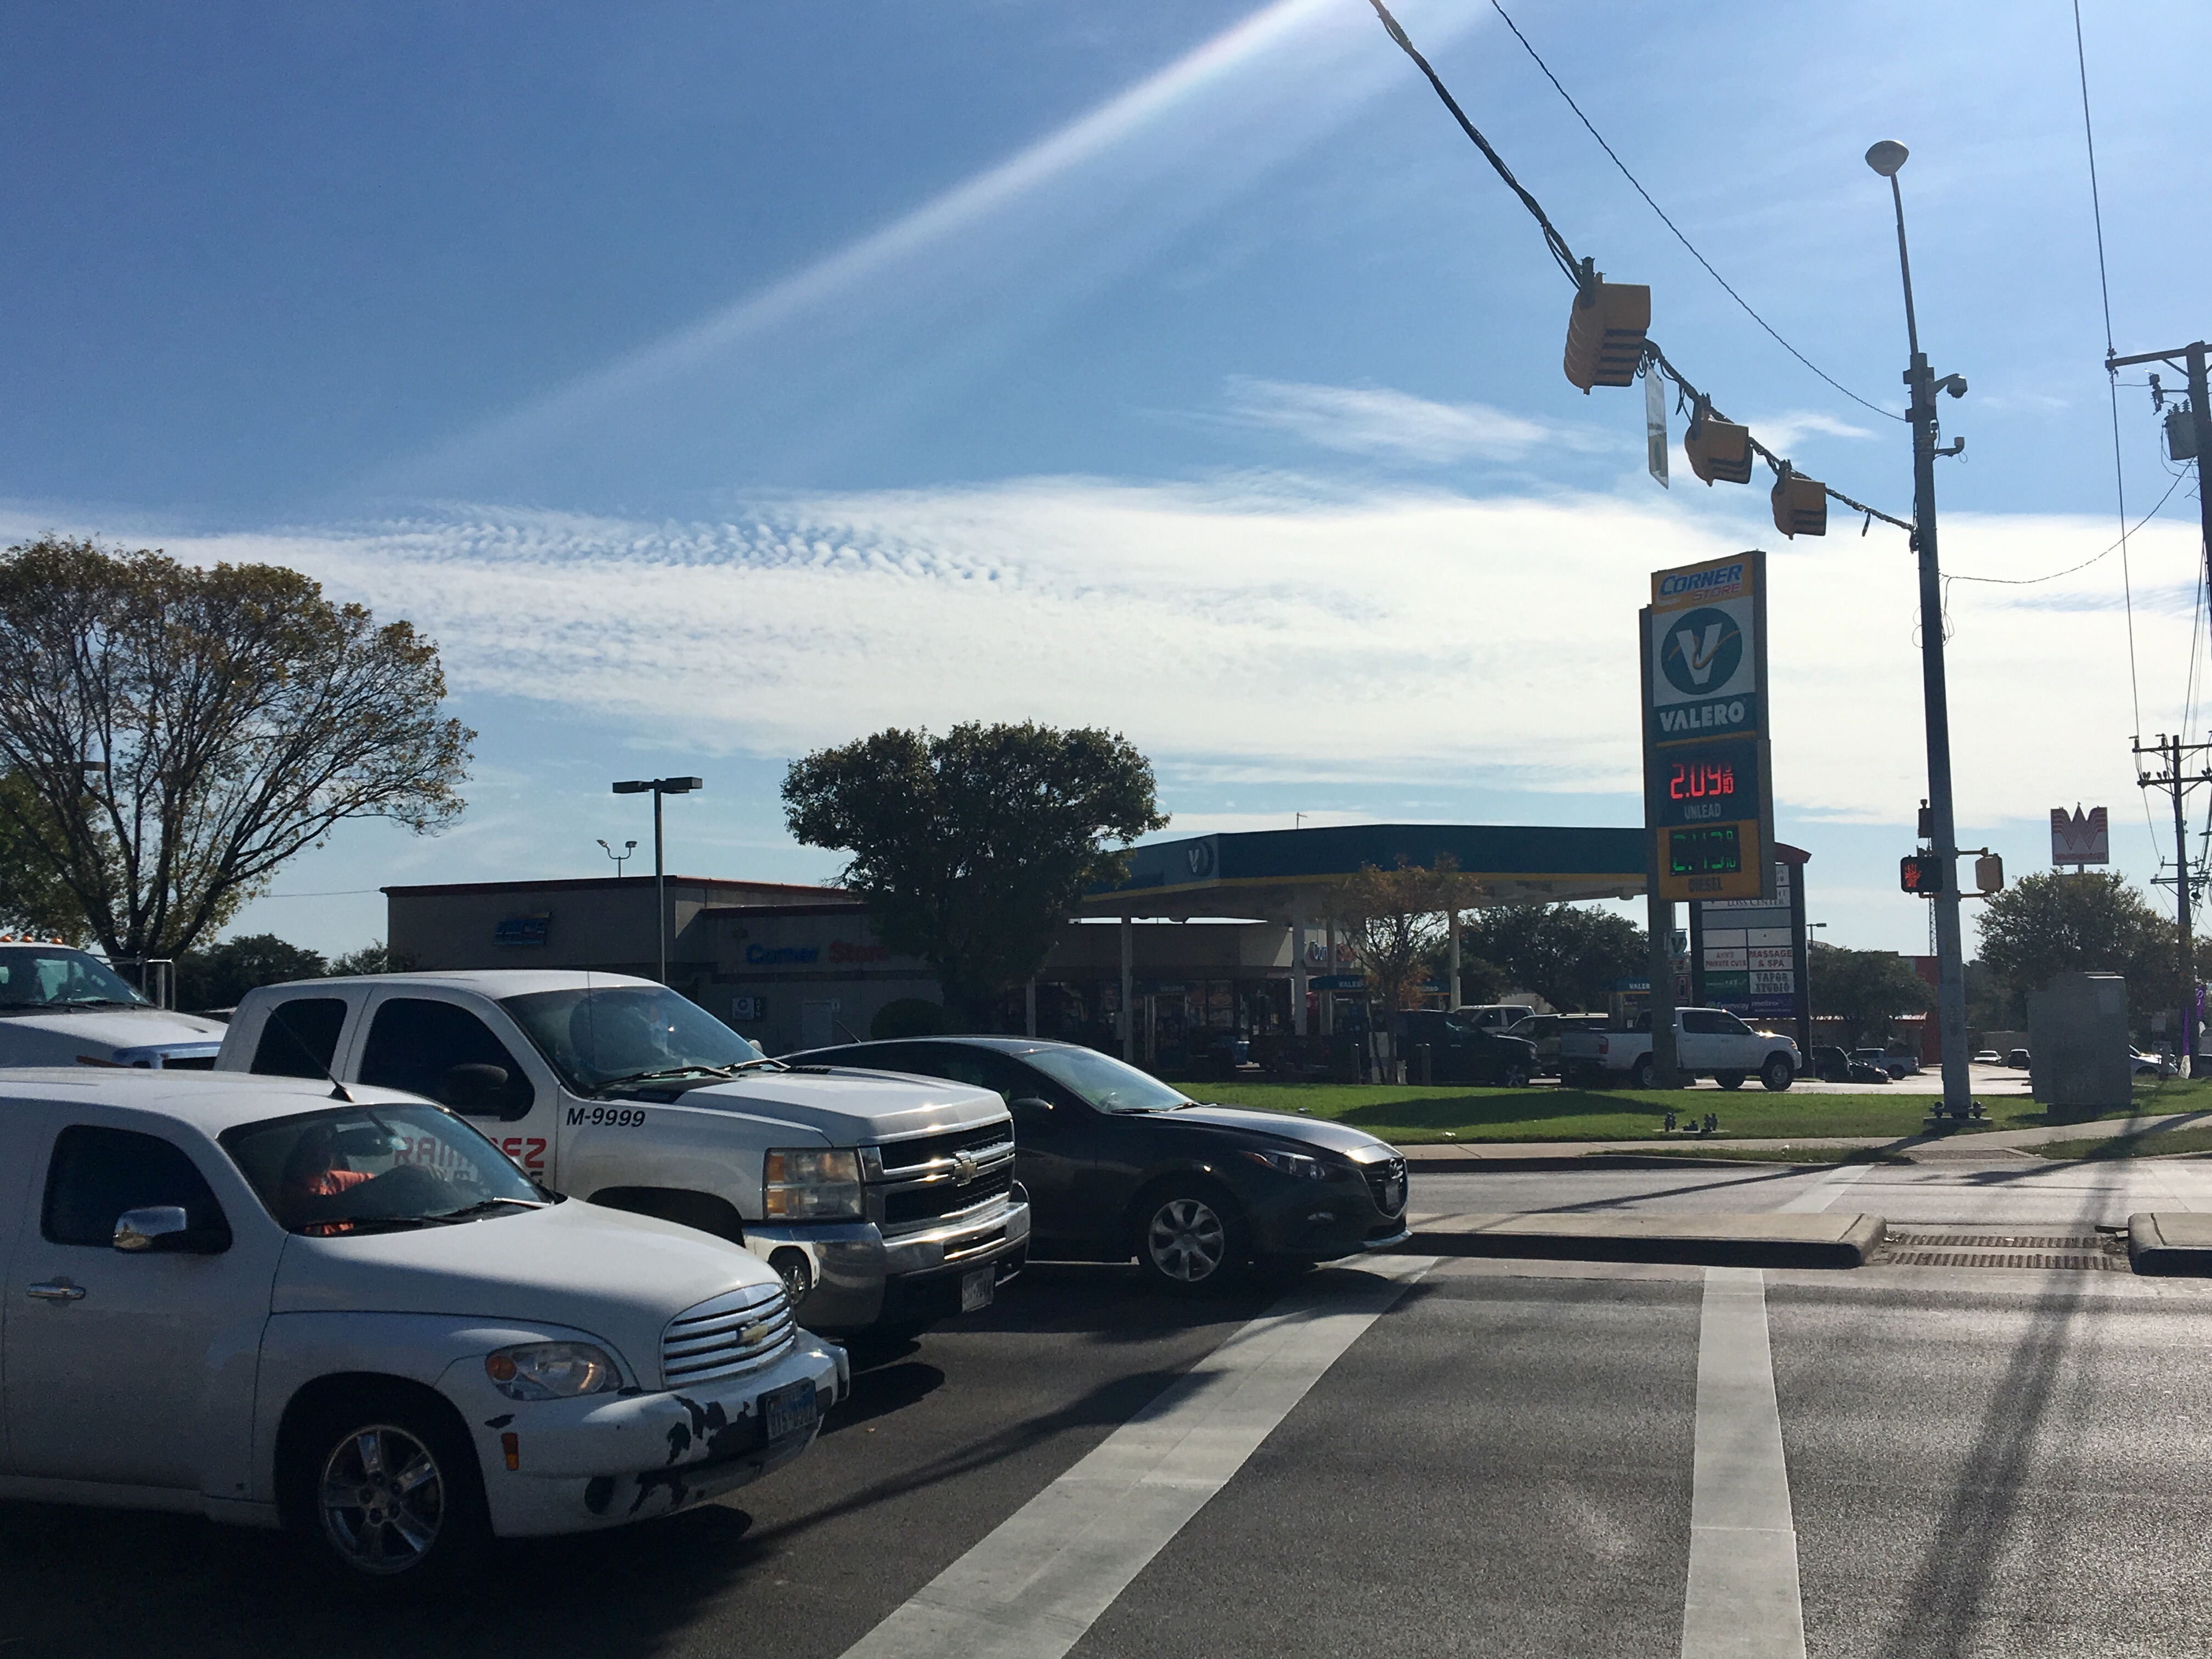 Valero gas station at I-35 and East Braker Lane where people told police a man driving a black vehicle had pointed a black, AR-style rifle at customers in the parking lot. approached him. (KXAN Photo/Kylie McGivern)